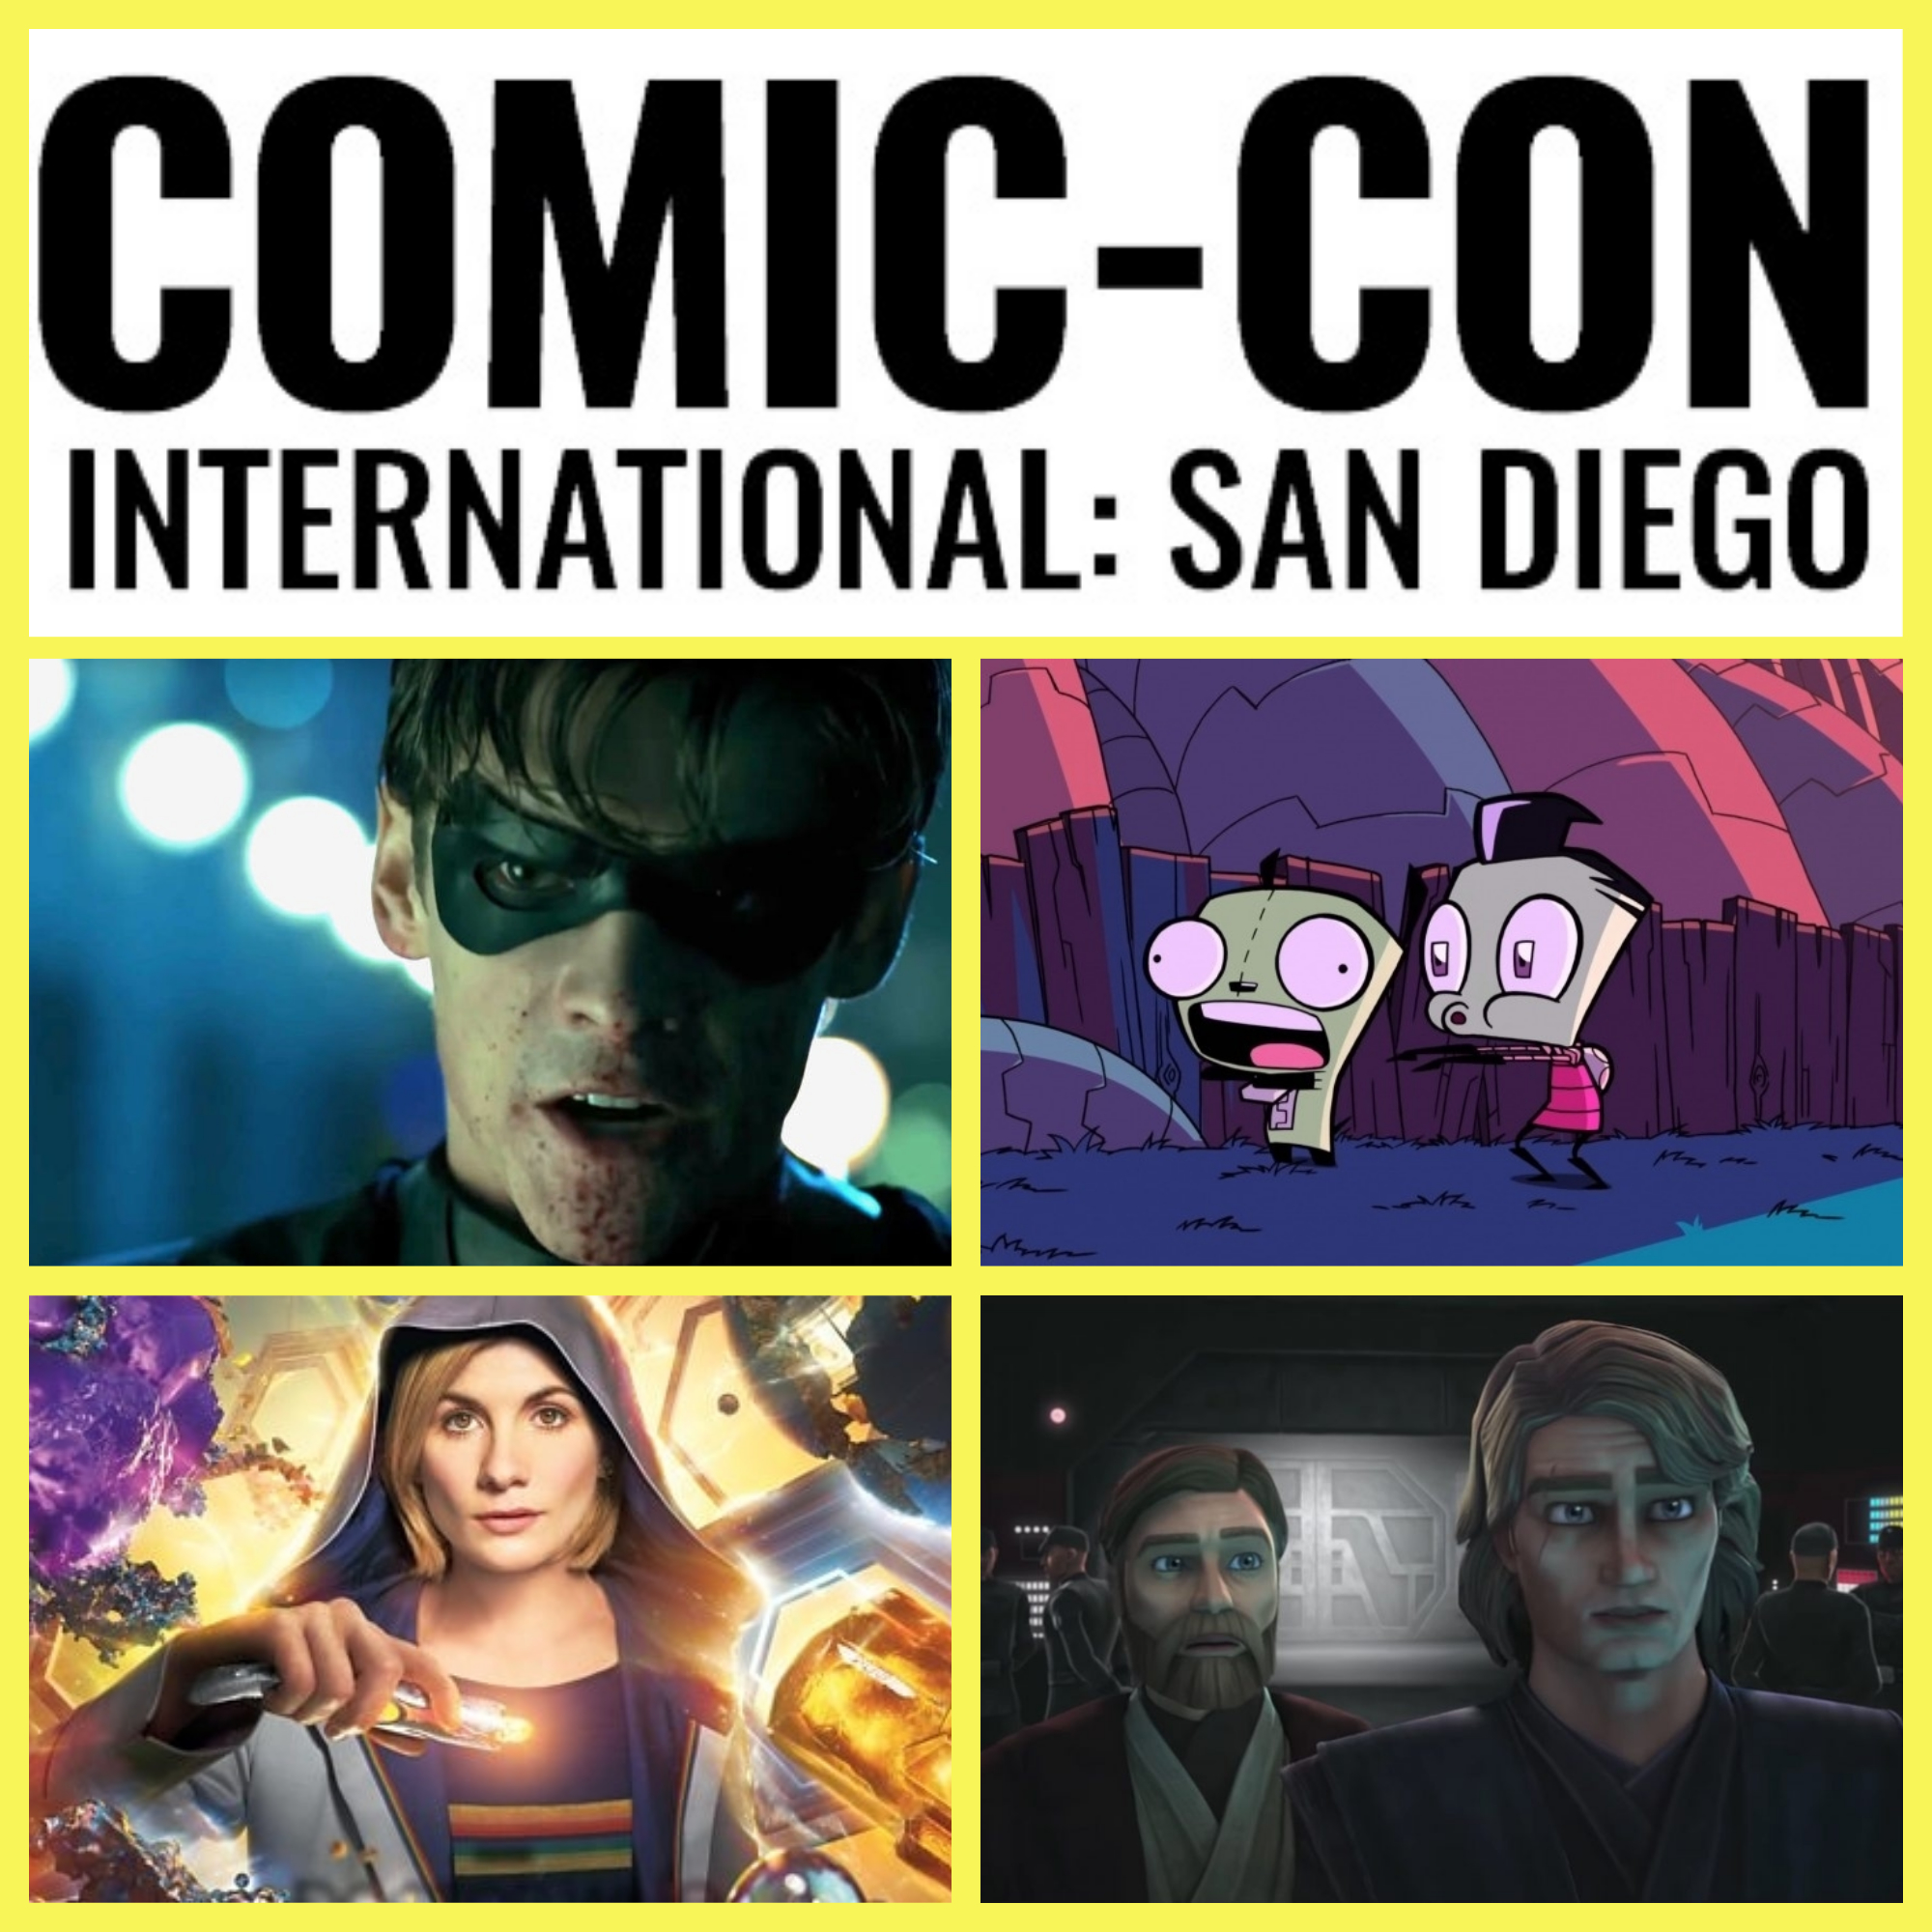 Trailer-A-Thon: Comic-Con 2018 Pt. 1 - Television! - San Diego Comic-Con 2018 has left its mark and host Serg and Patrick give their thoughts on the trailers dropped over the weekend.In this first part, the hosts cover the latest in television from the controversial